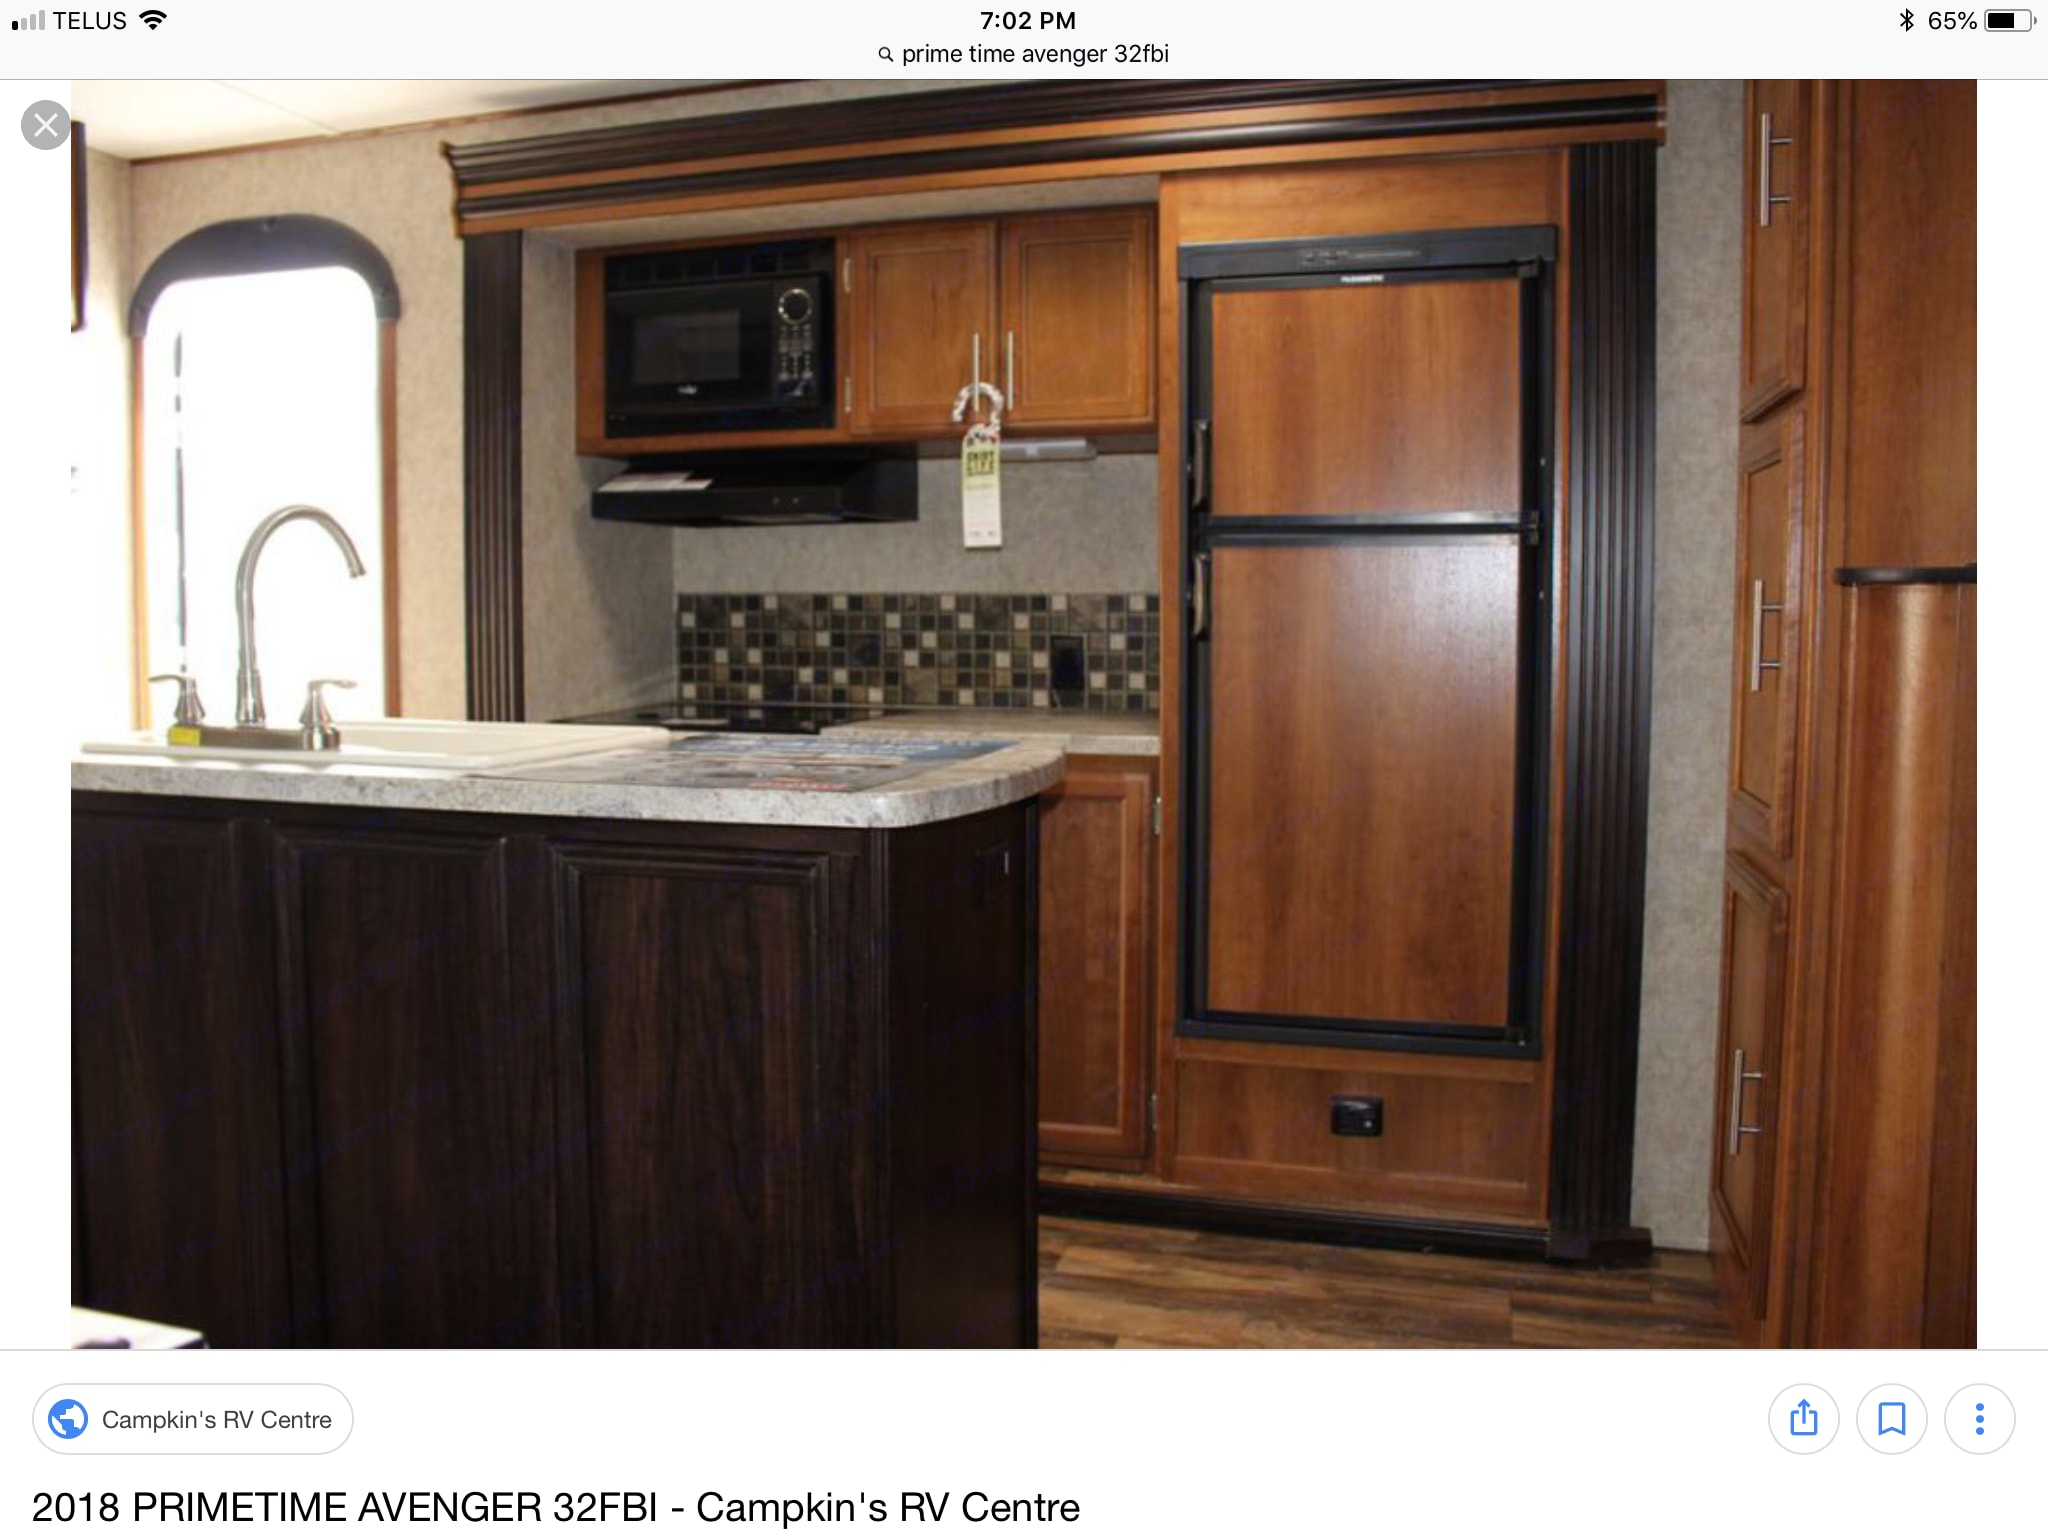 Spacious preparation and cooking area with island sink . Prime Time Avenger 2016